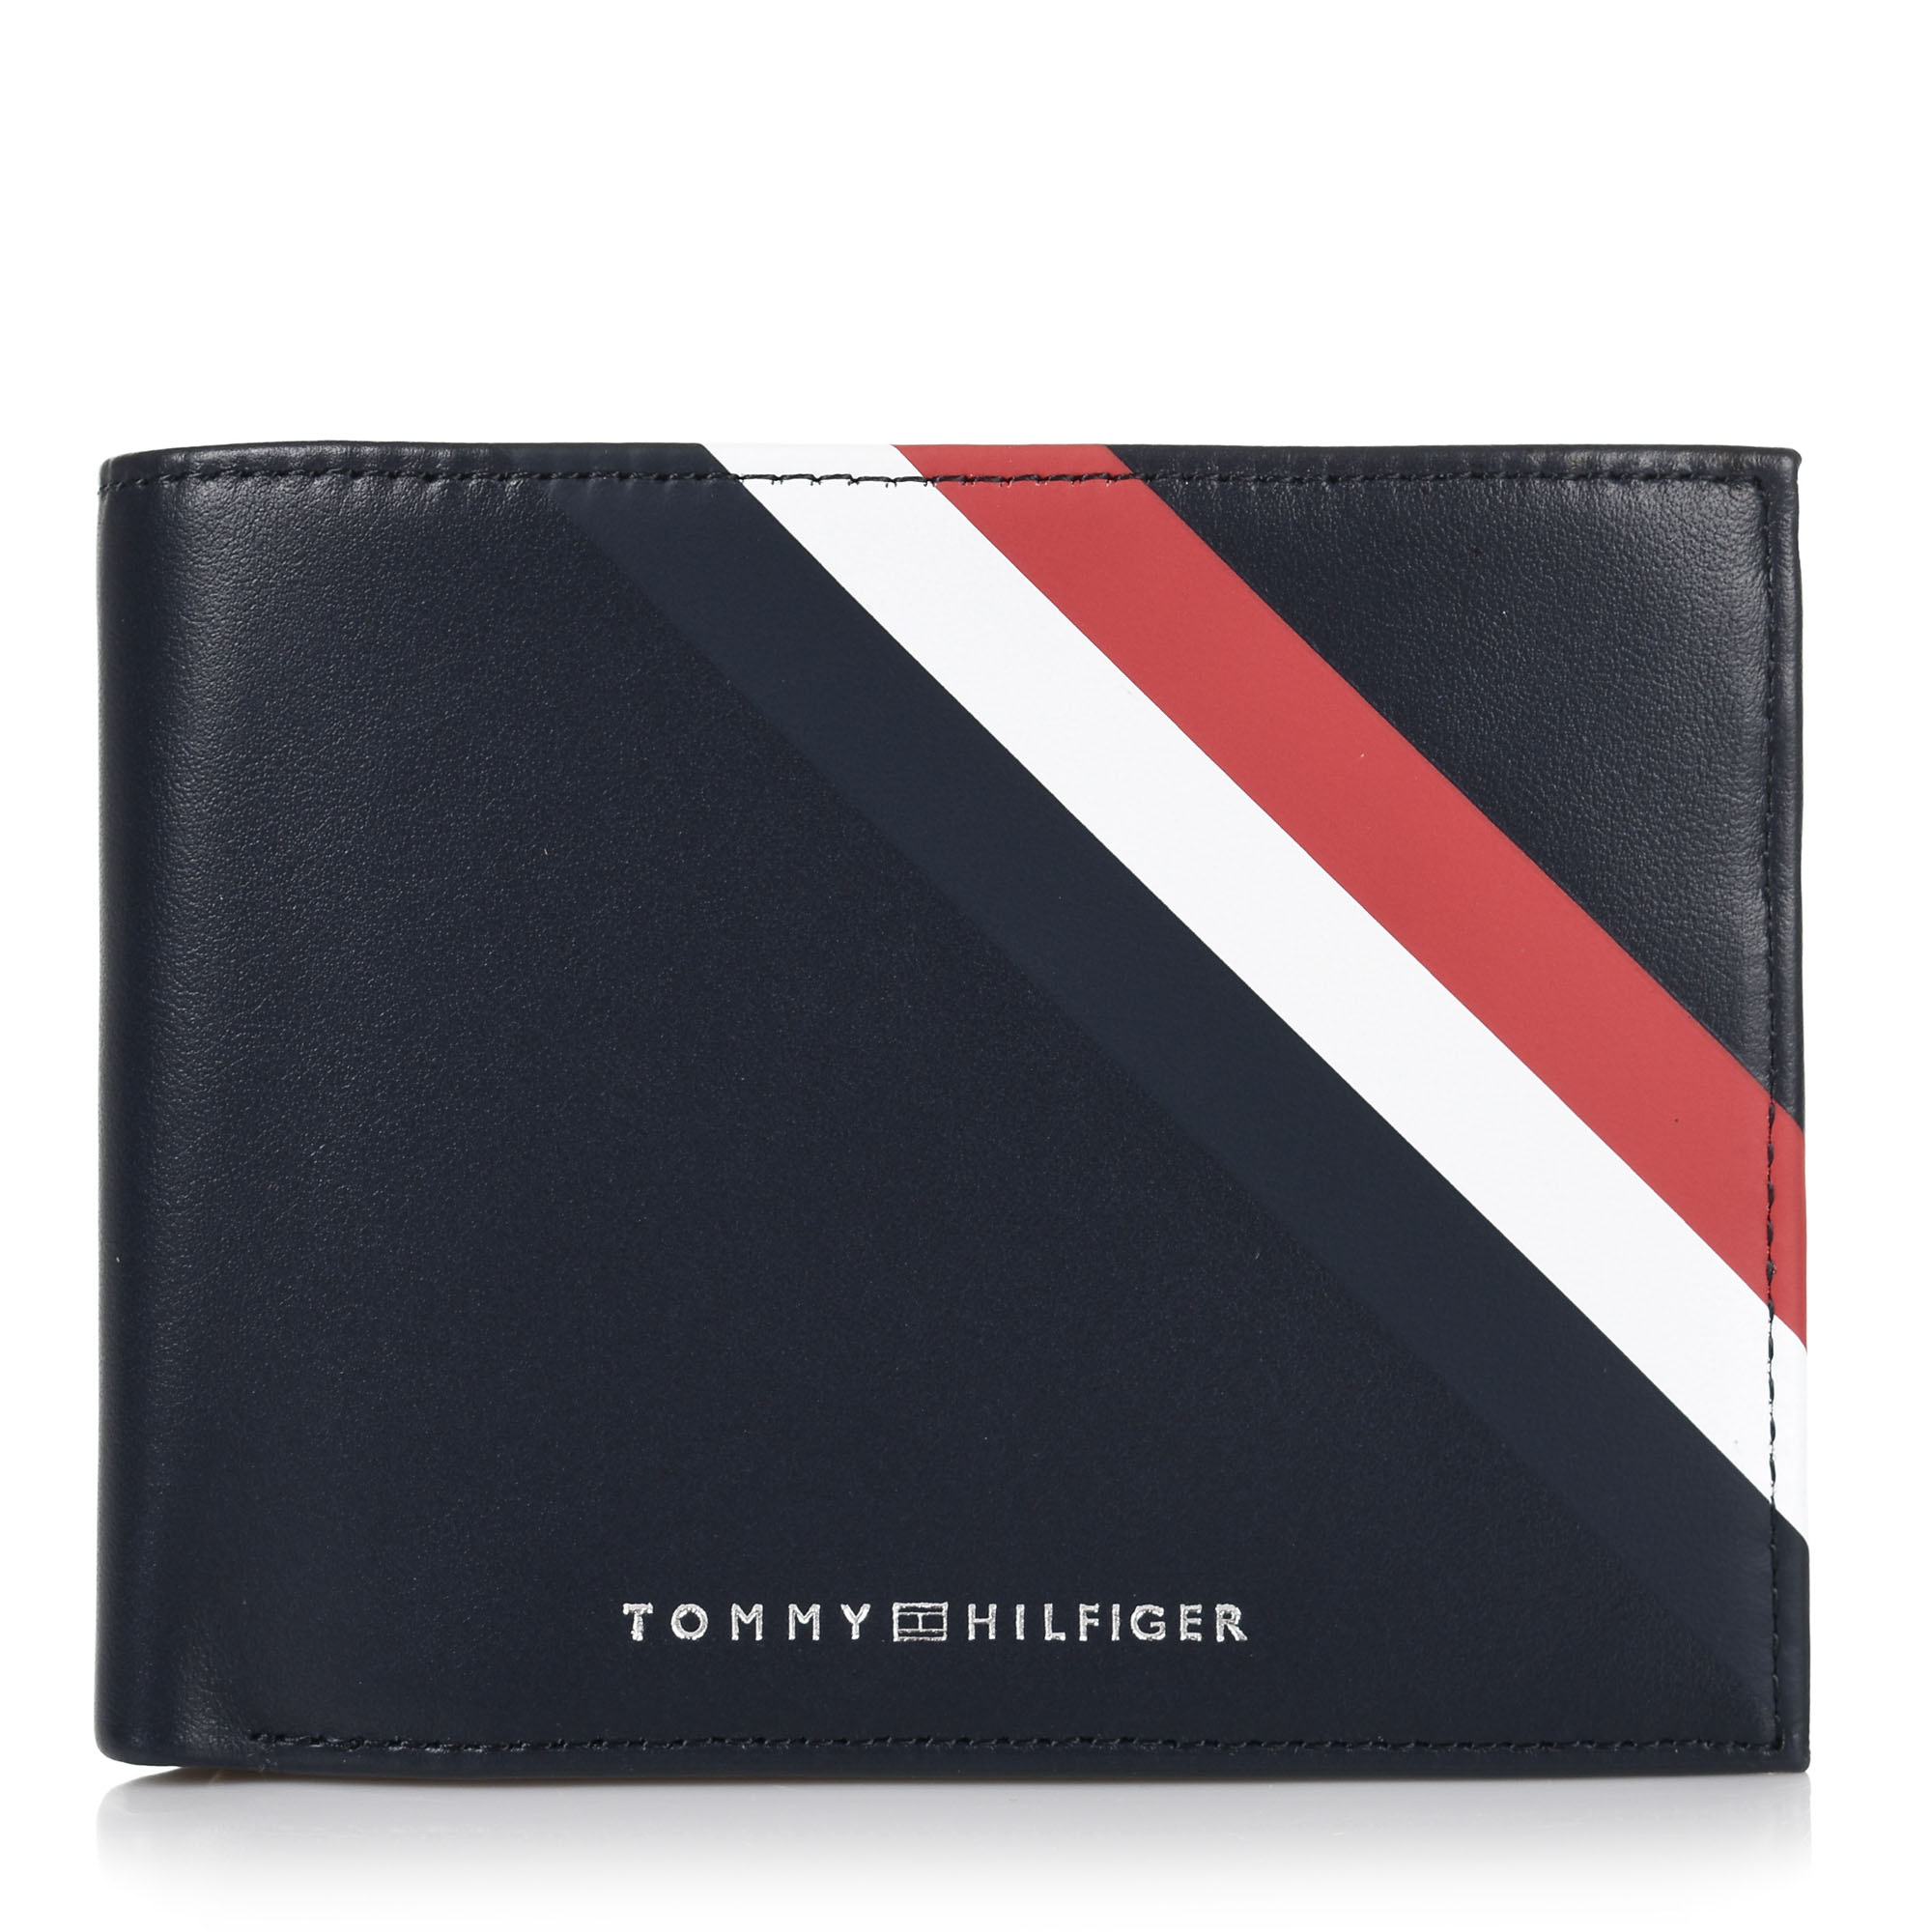 04a1d54bc6 Δερμάτινο Πορτοφόλι Tommy Hilfiger Bold Corporate CC Flap And Coin  AM0AM04535